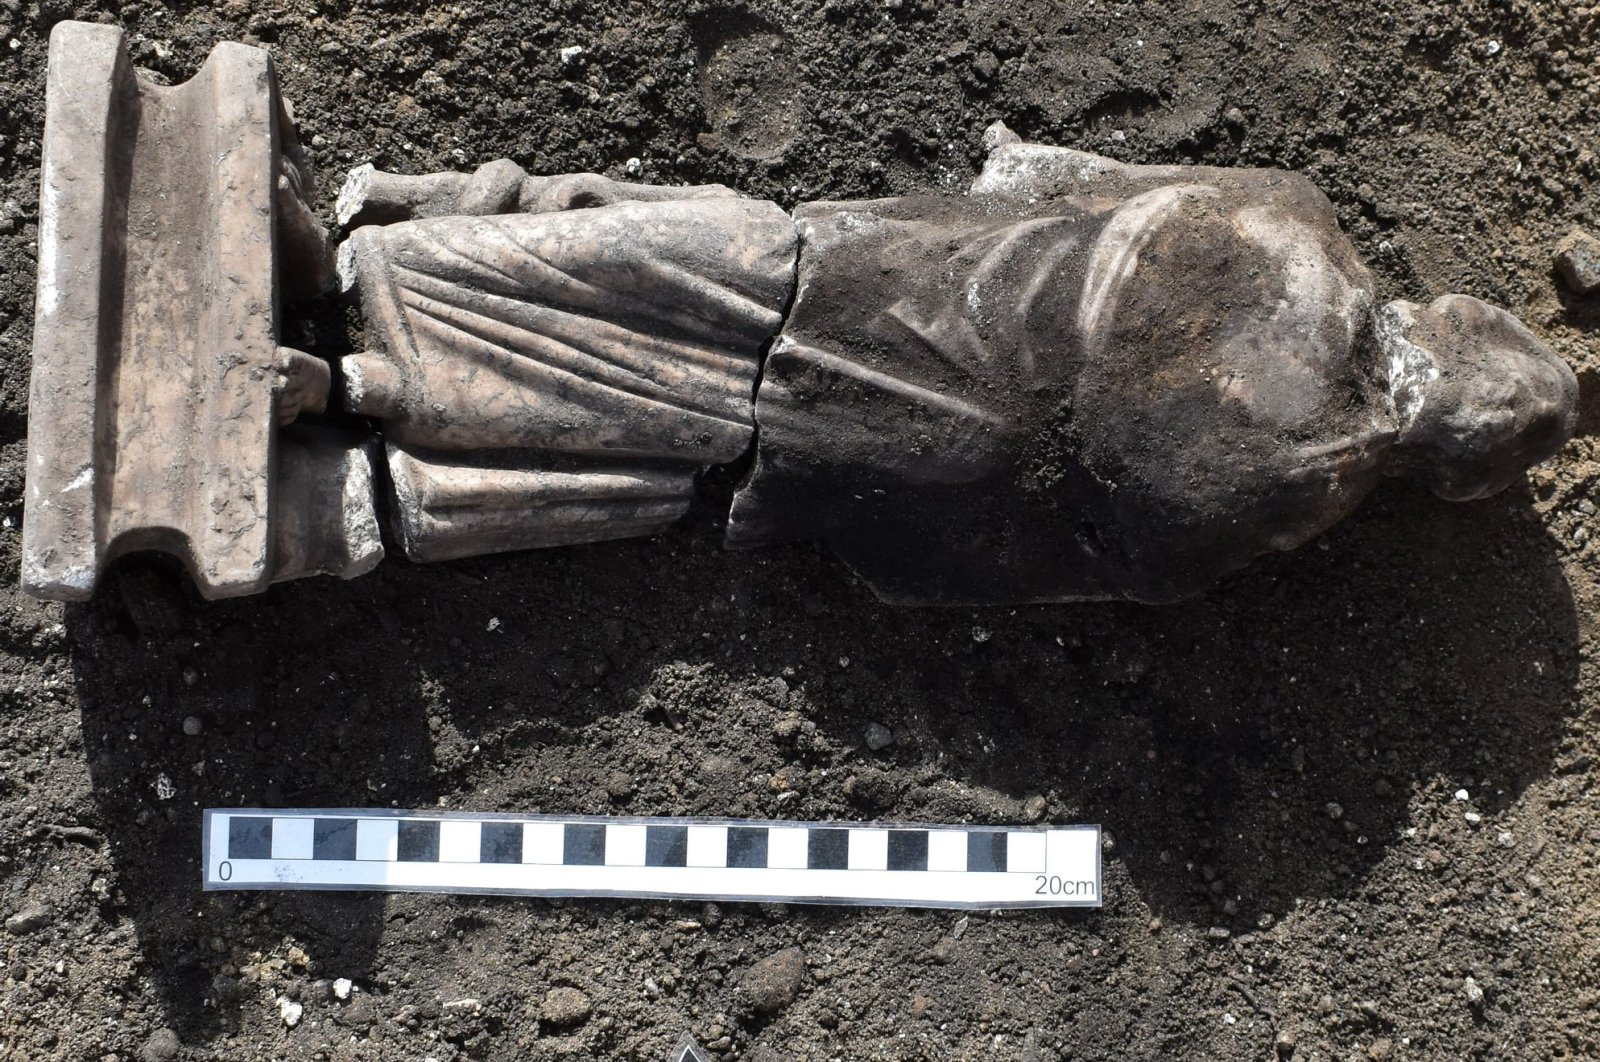 One of the statues was determined to depict Asclepius, evident from his serpent-entwined staff, Jan. 6, 2021. (DHA Photo)